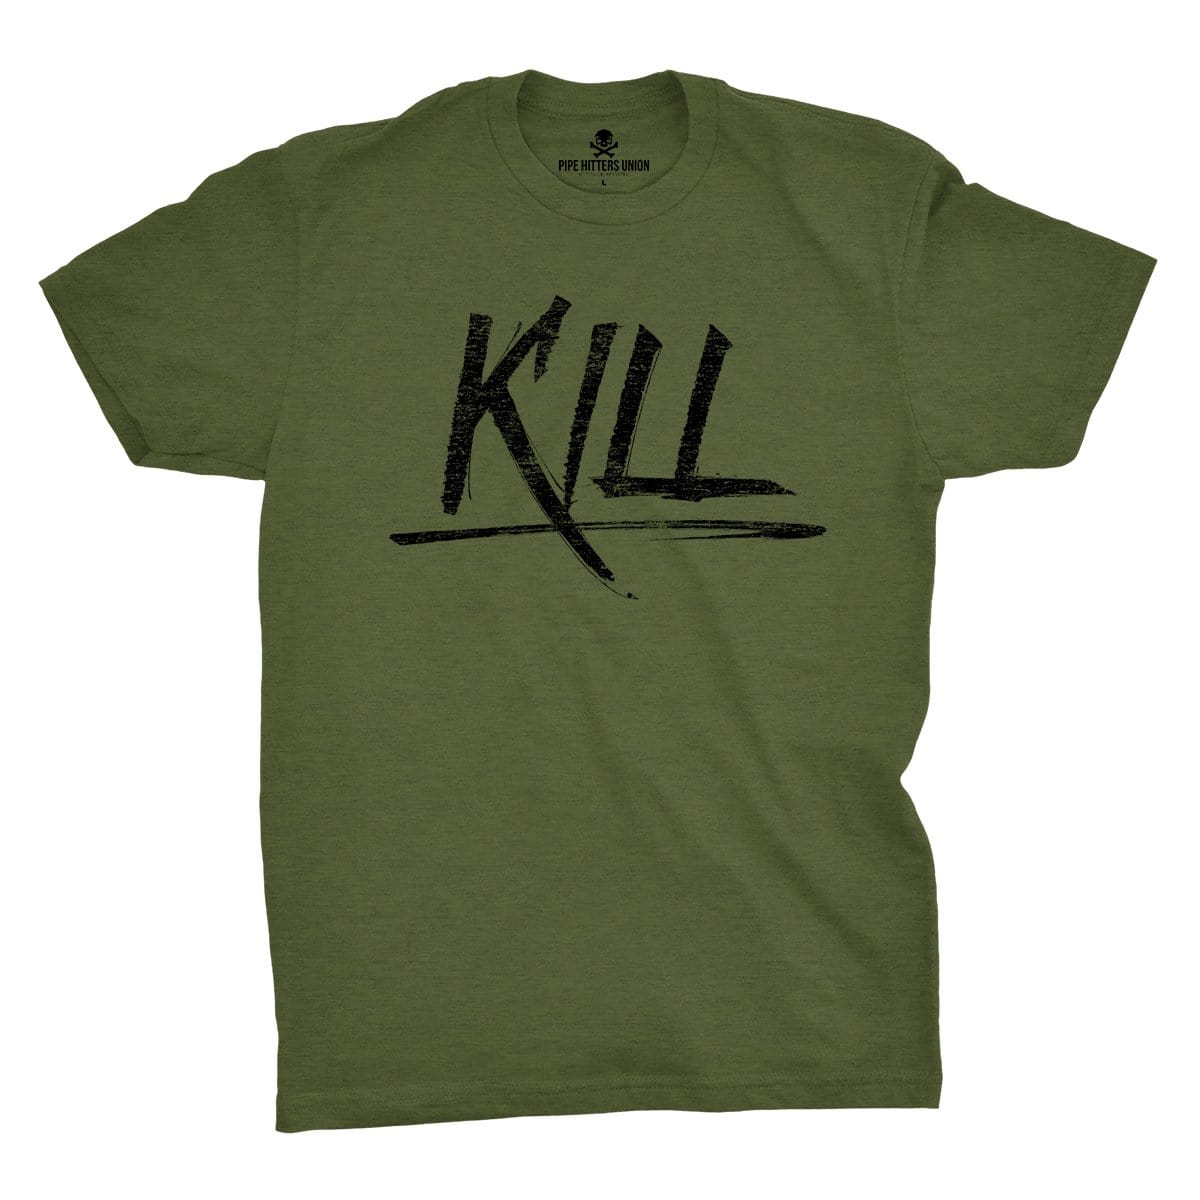 Kill - Military Green - T-Shirts - Pipe Hitters Union